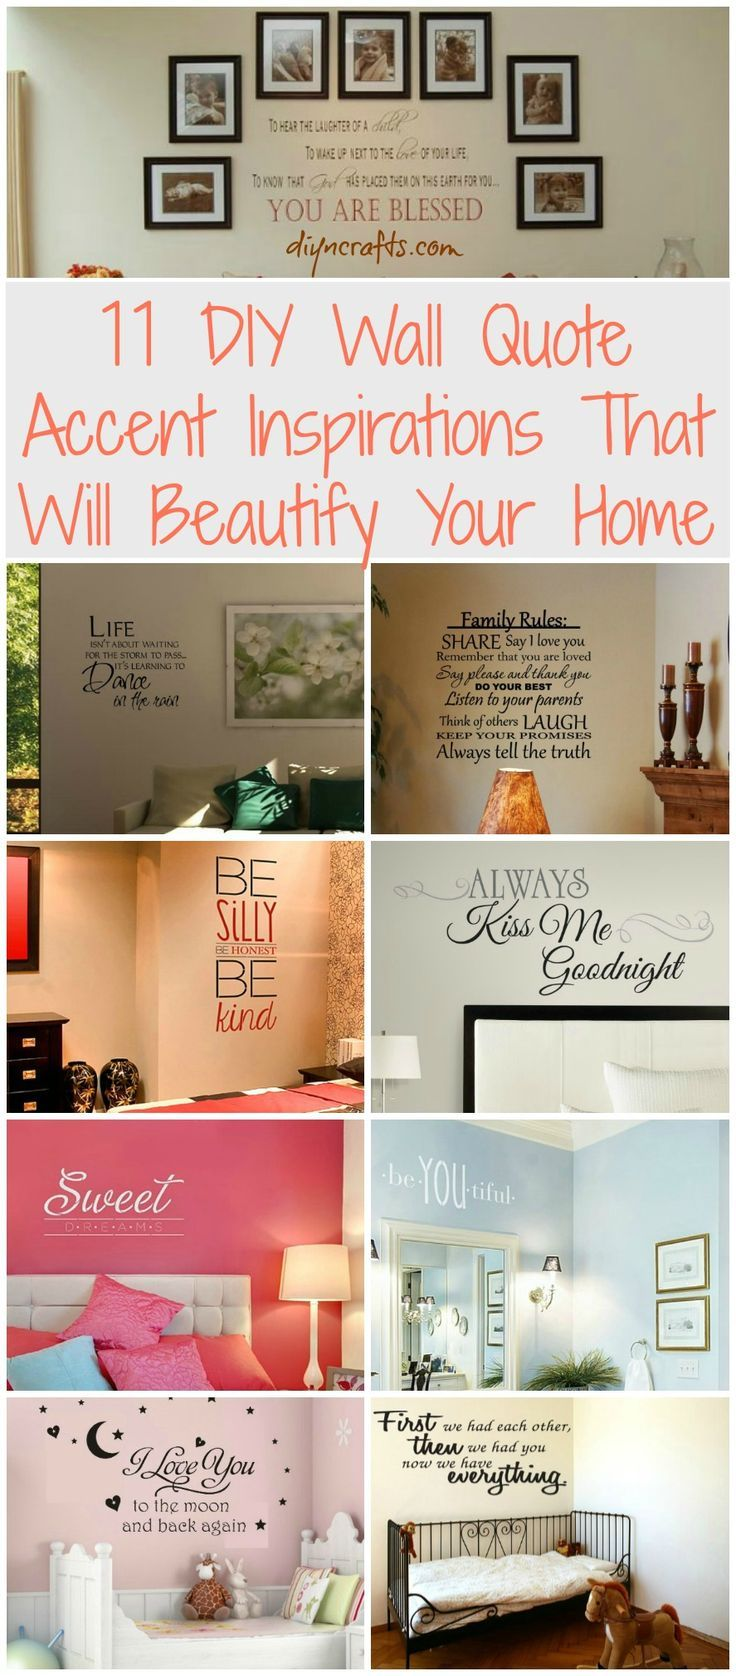 Bathroom wall decor quotes - 11 Diy Wall Quote Accent Inspirations That Will Beautify Your Home Wall Decor Quotesbathroom